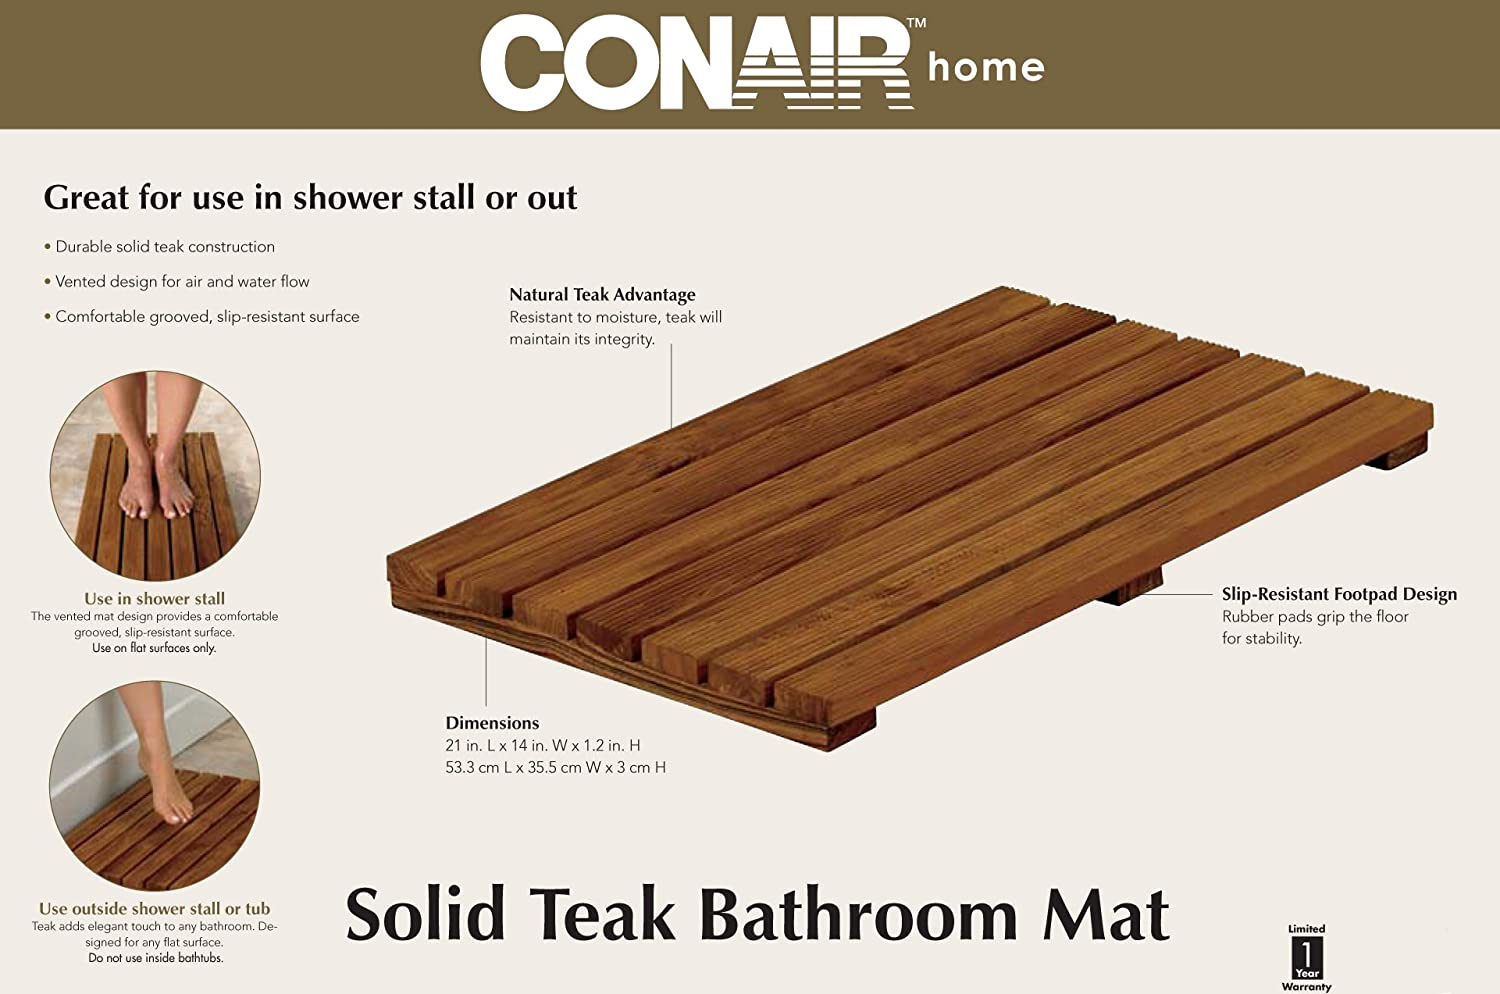 Design Teak Bath Mat amazon com conair home solid teak bathroom mat health personal care